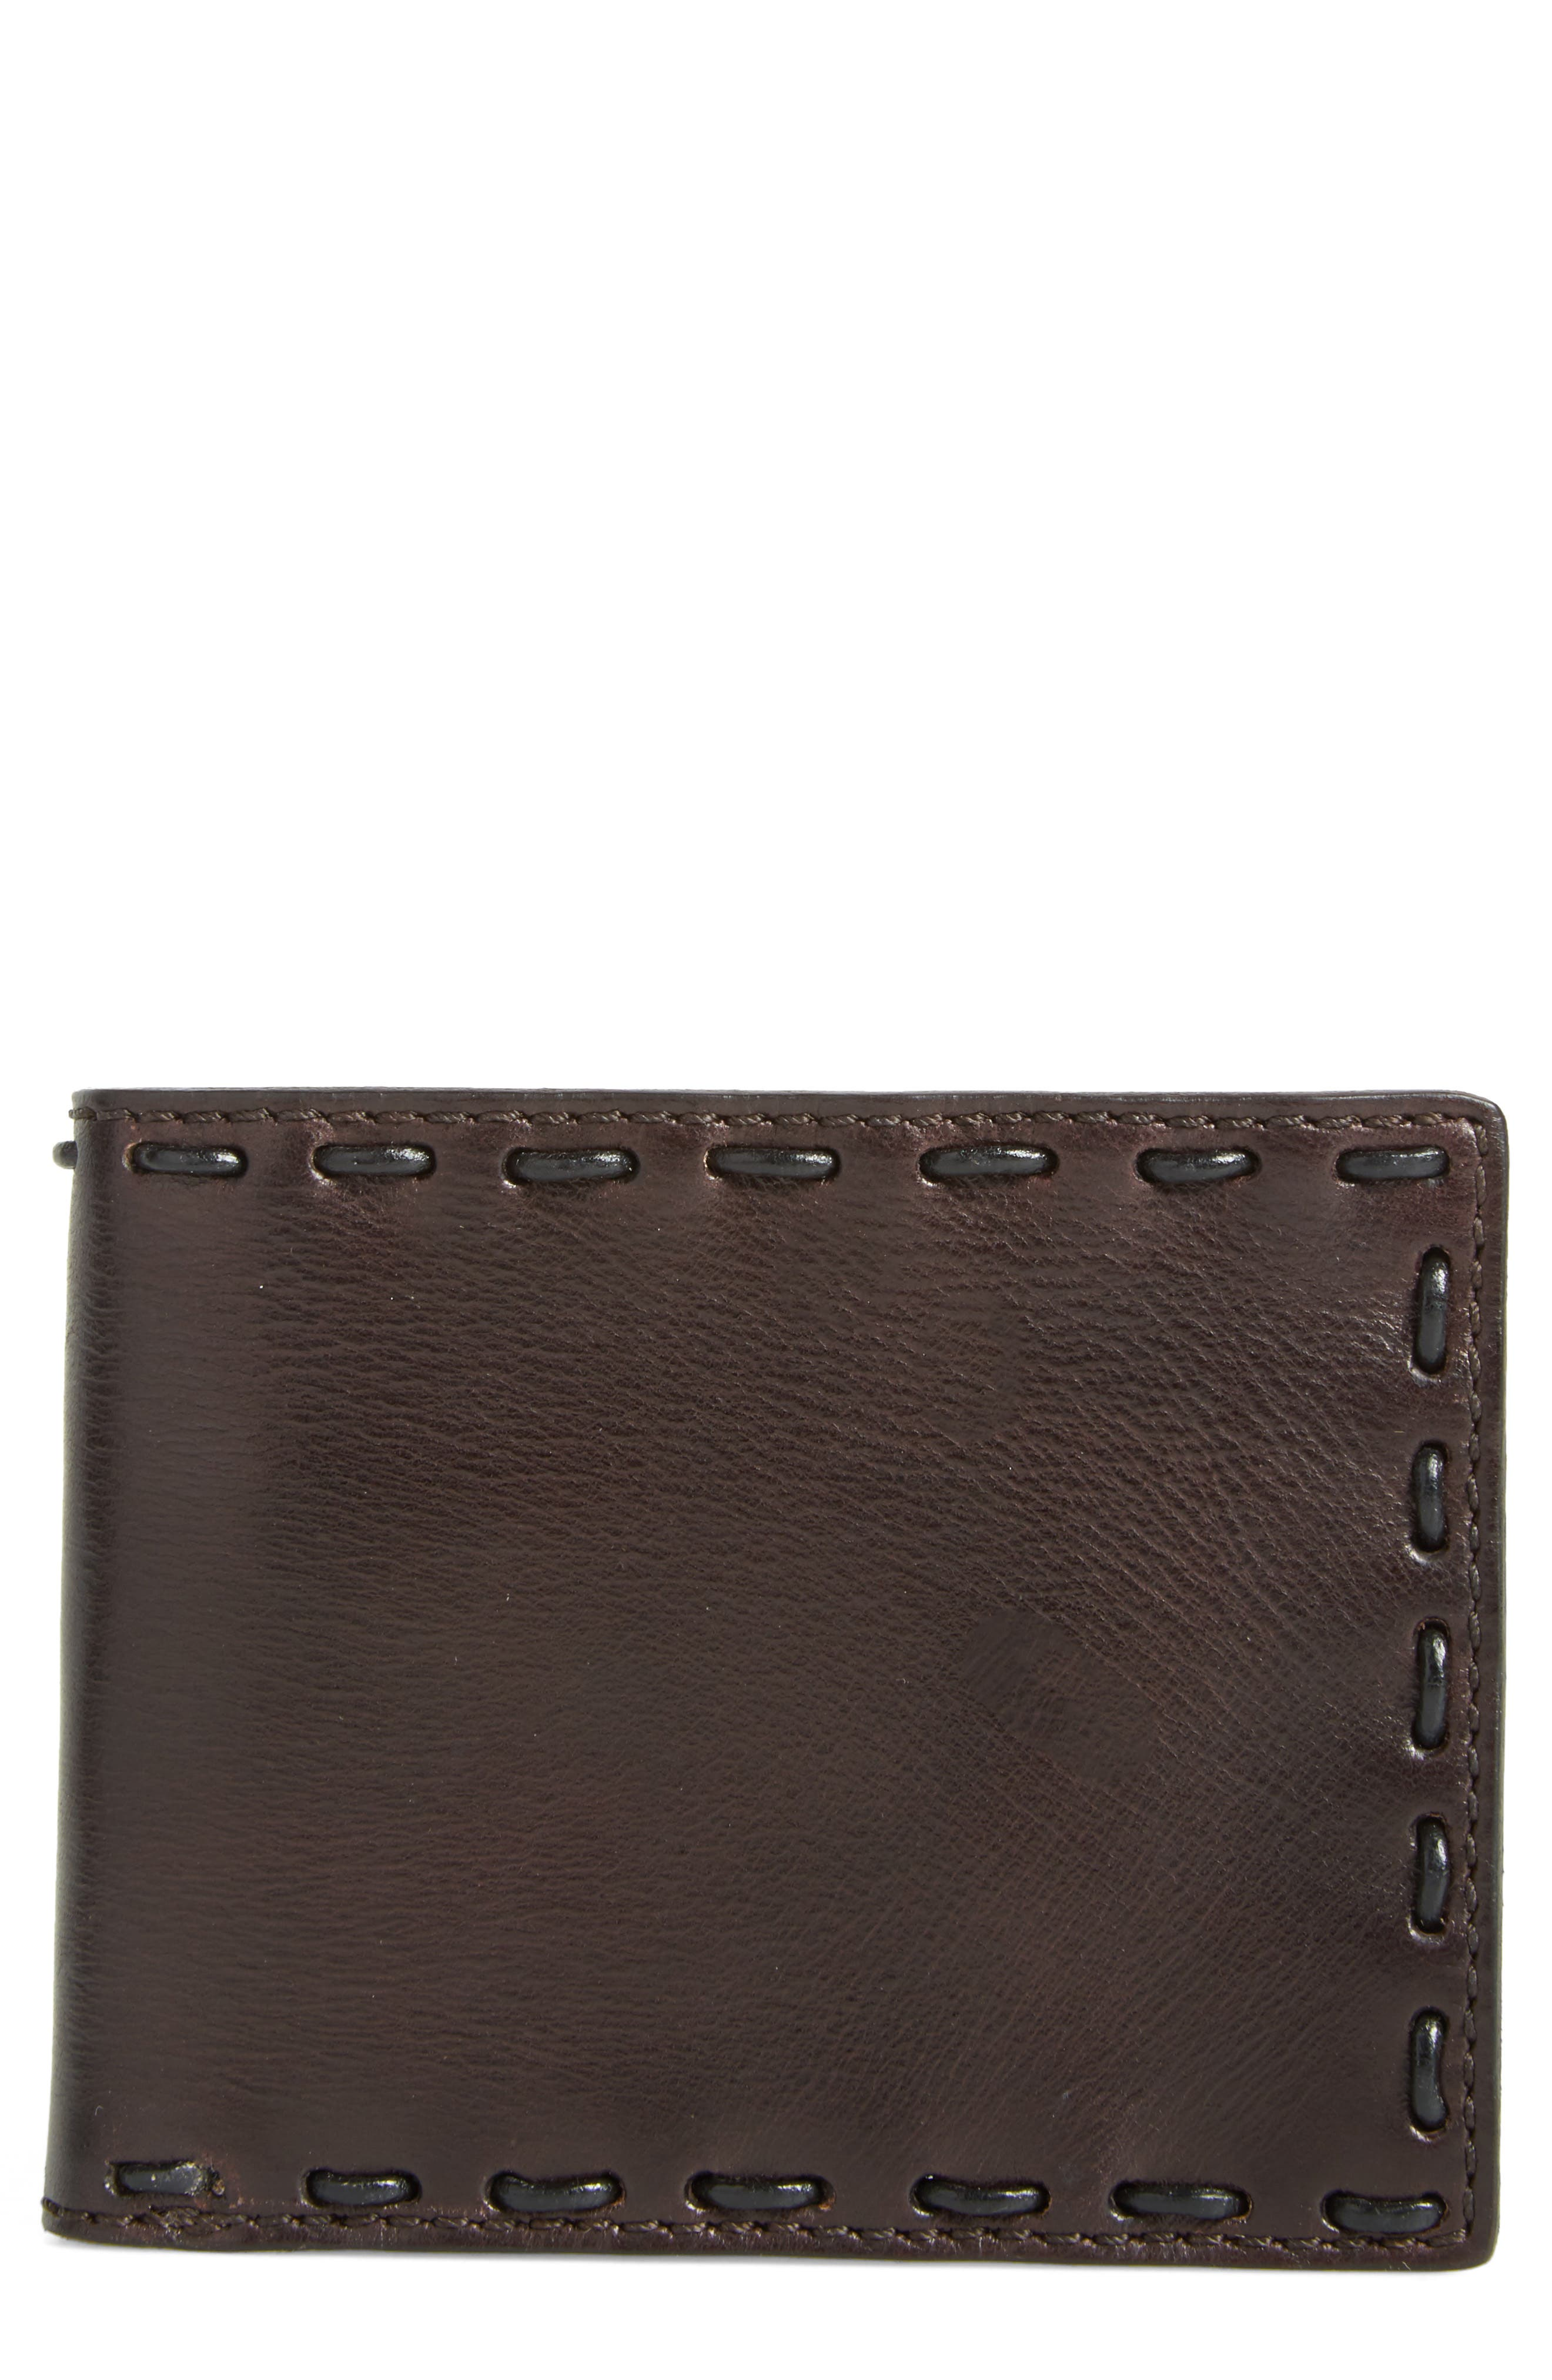 Pickstitch Leather Bifold Wallet,                         Main,                         color, Chocolate